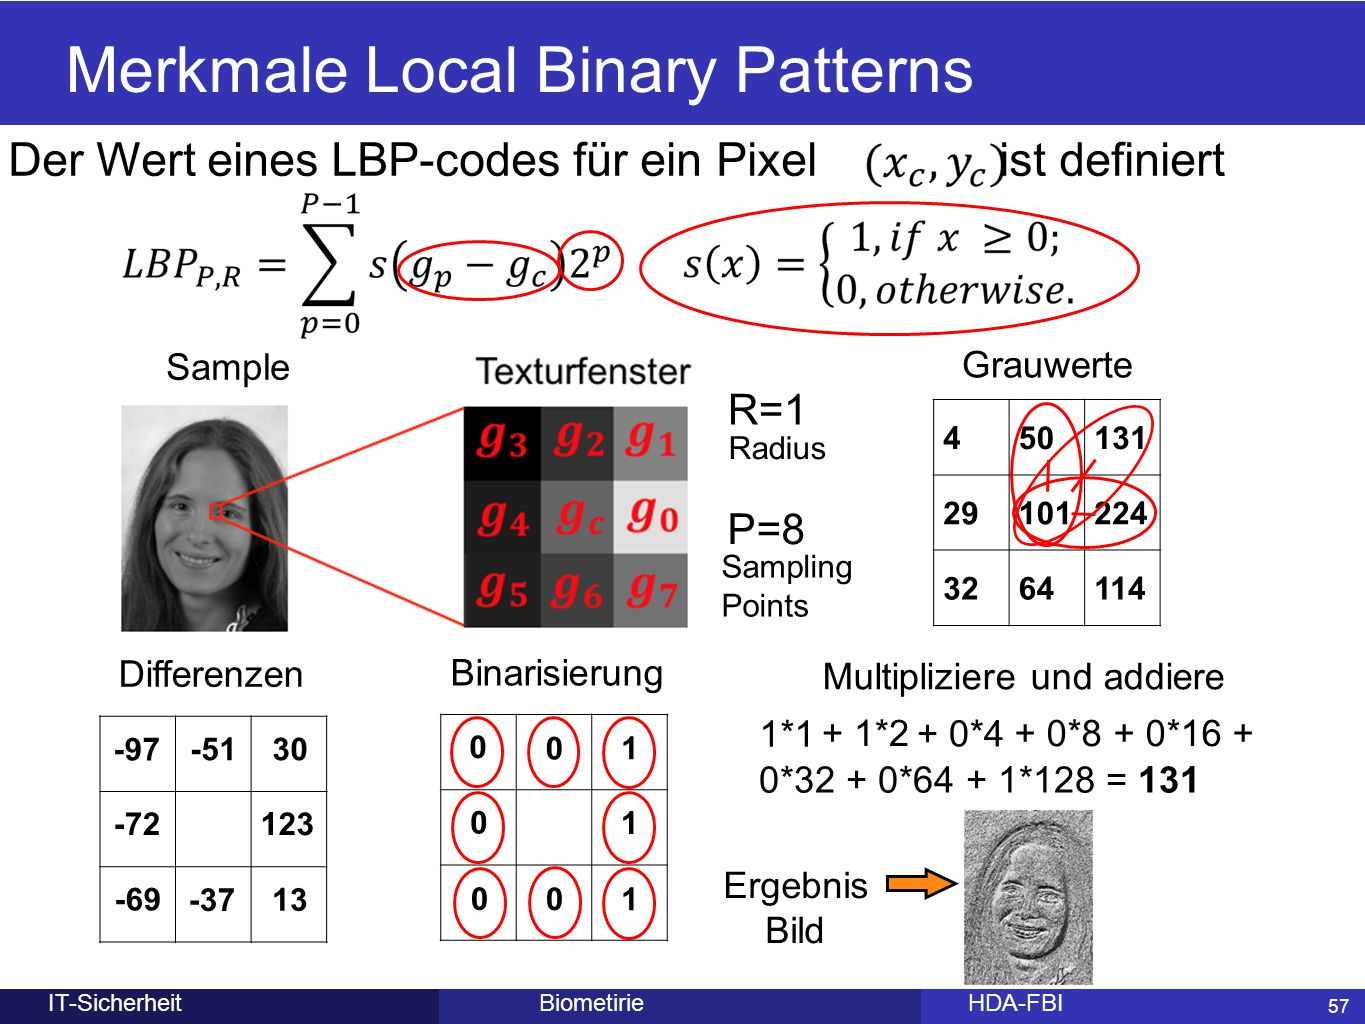 Merkmale Local Binary Patterns